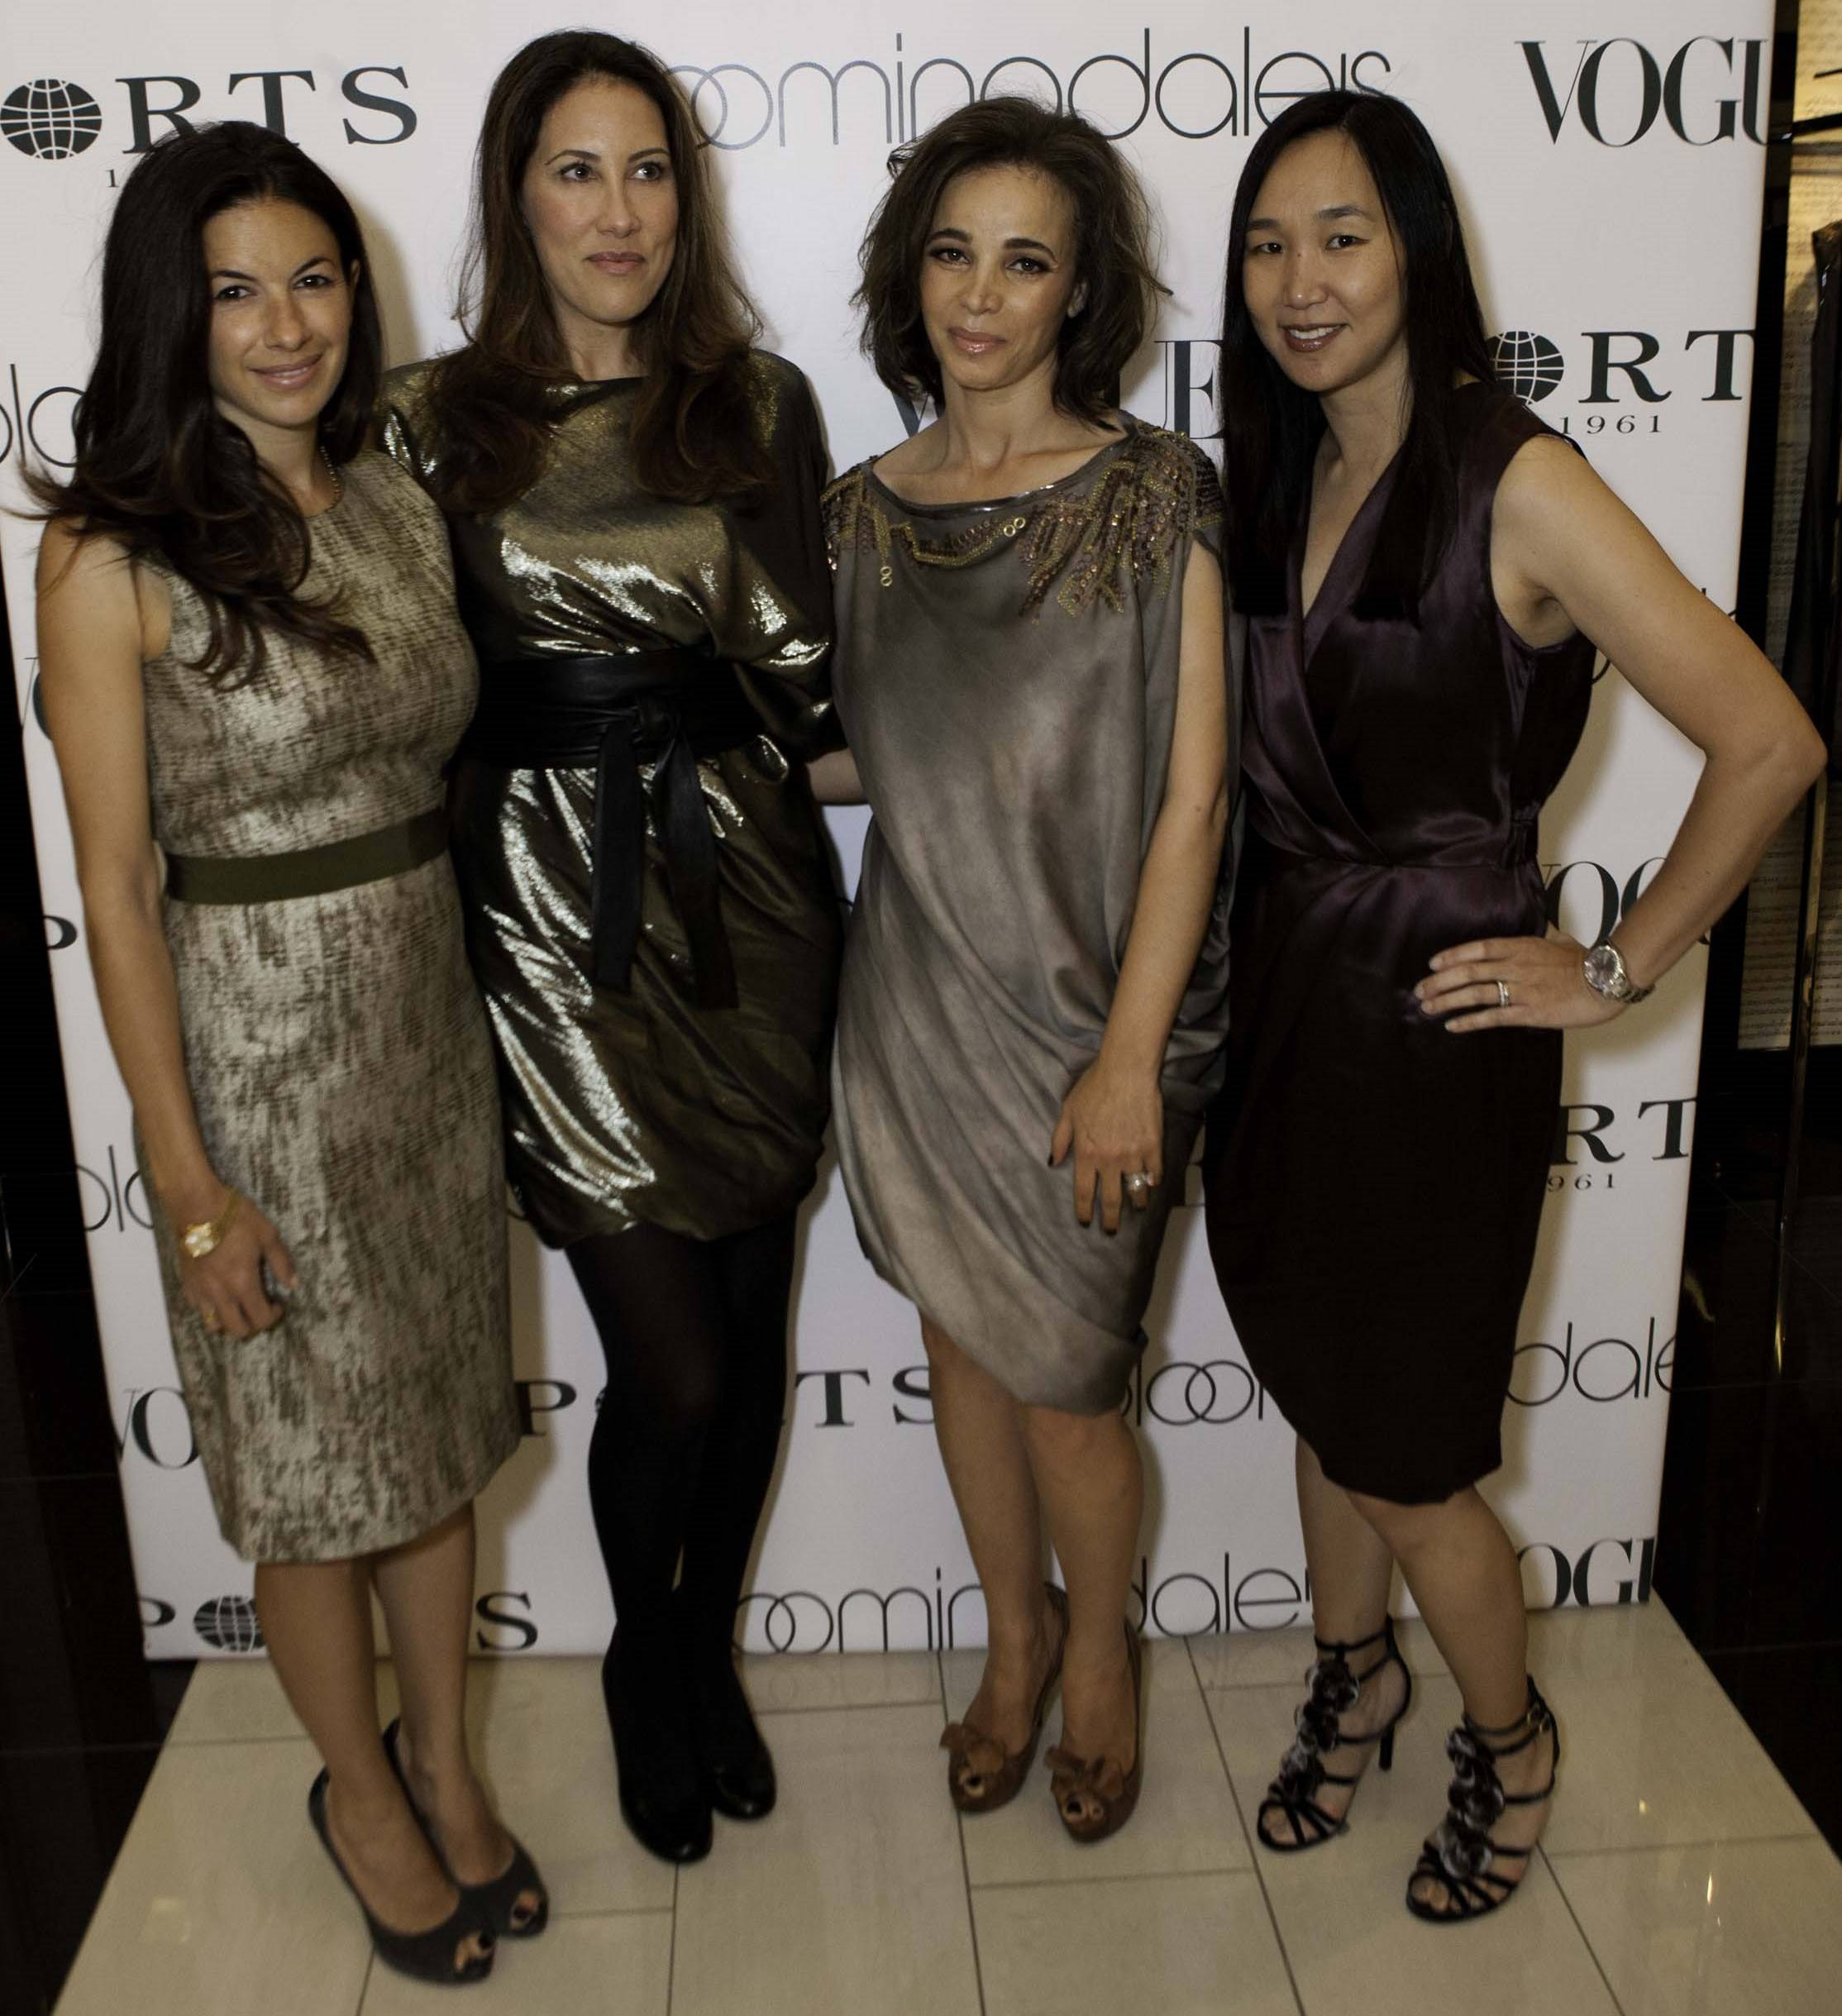 0107-Vogue-and-ports-100930_1